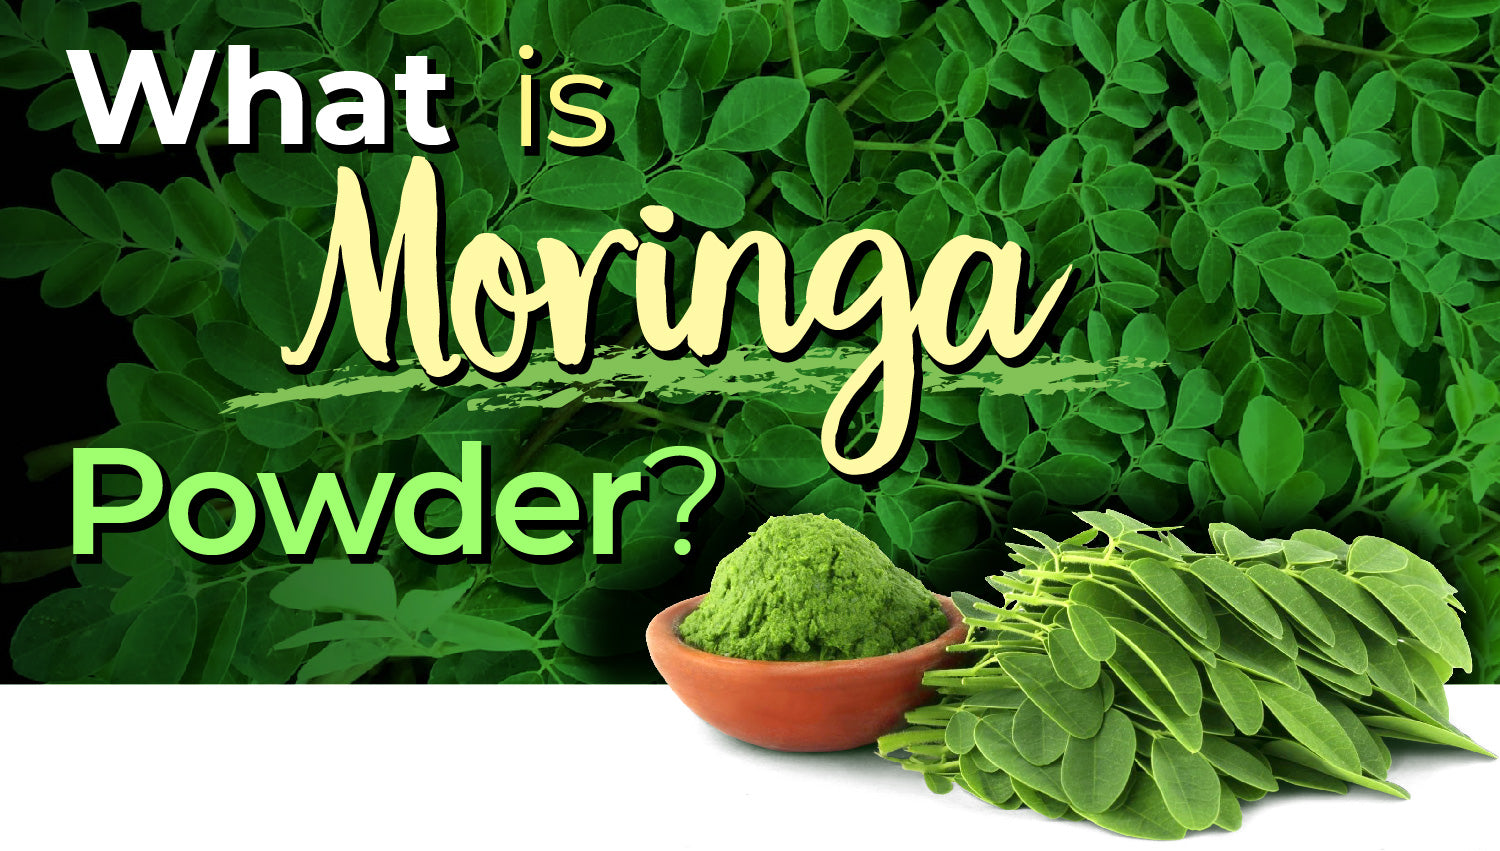 What is Moringa Powder? 3 Simple Ways to Use It | Blog | Alovitox Organic Superfoods